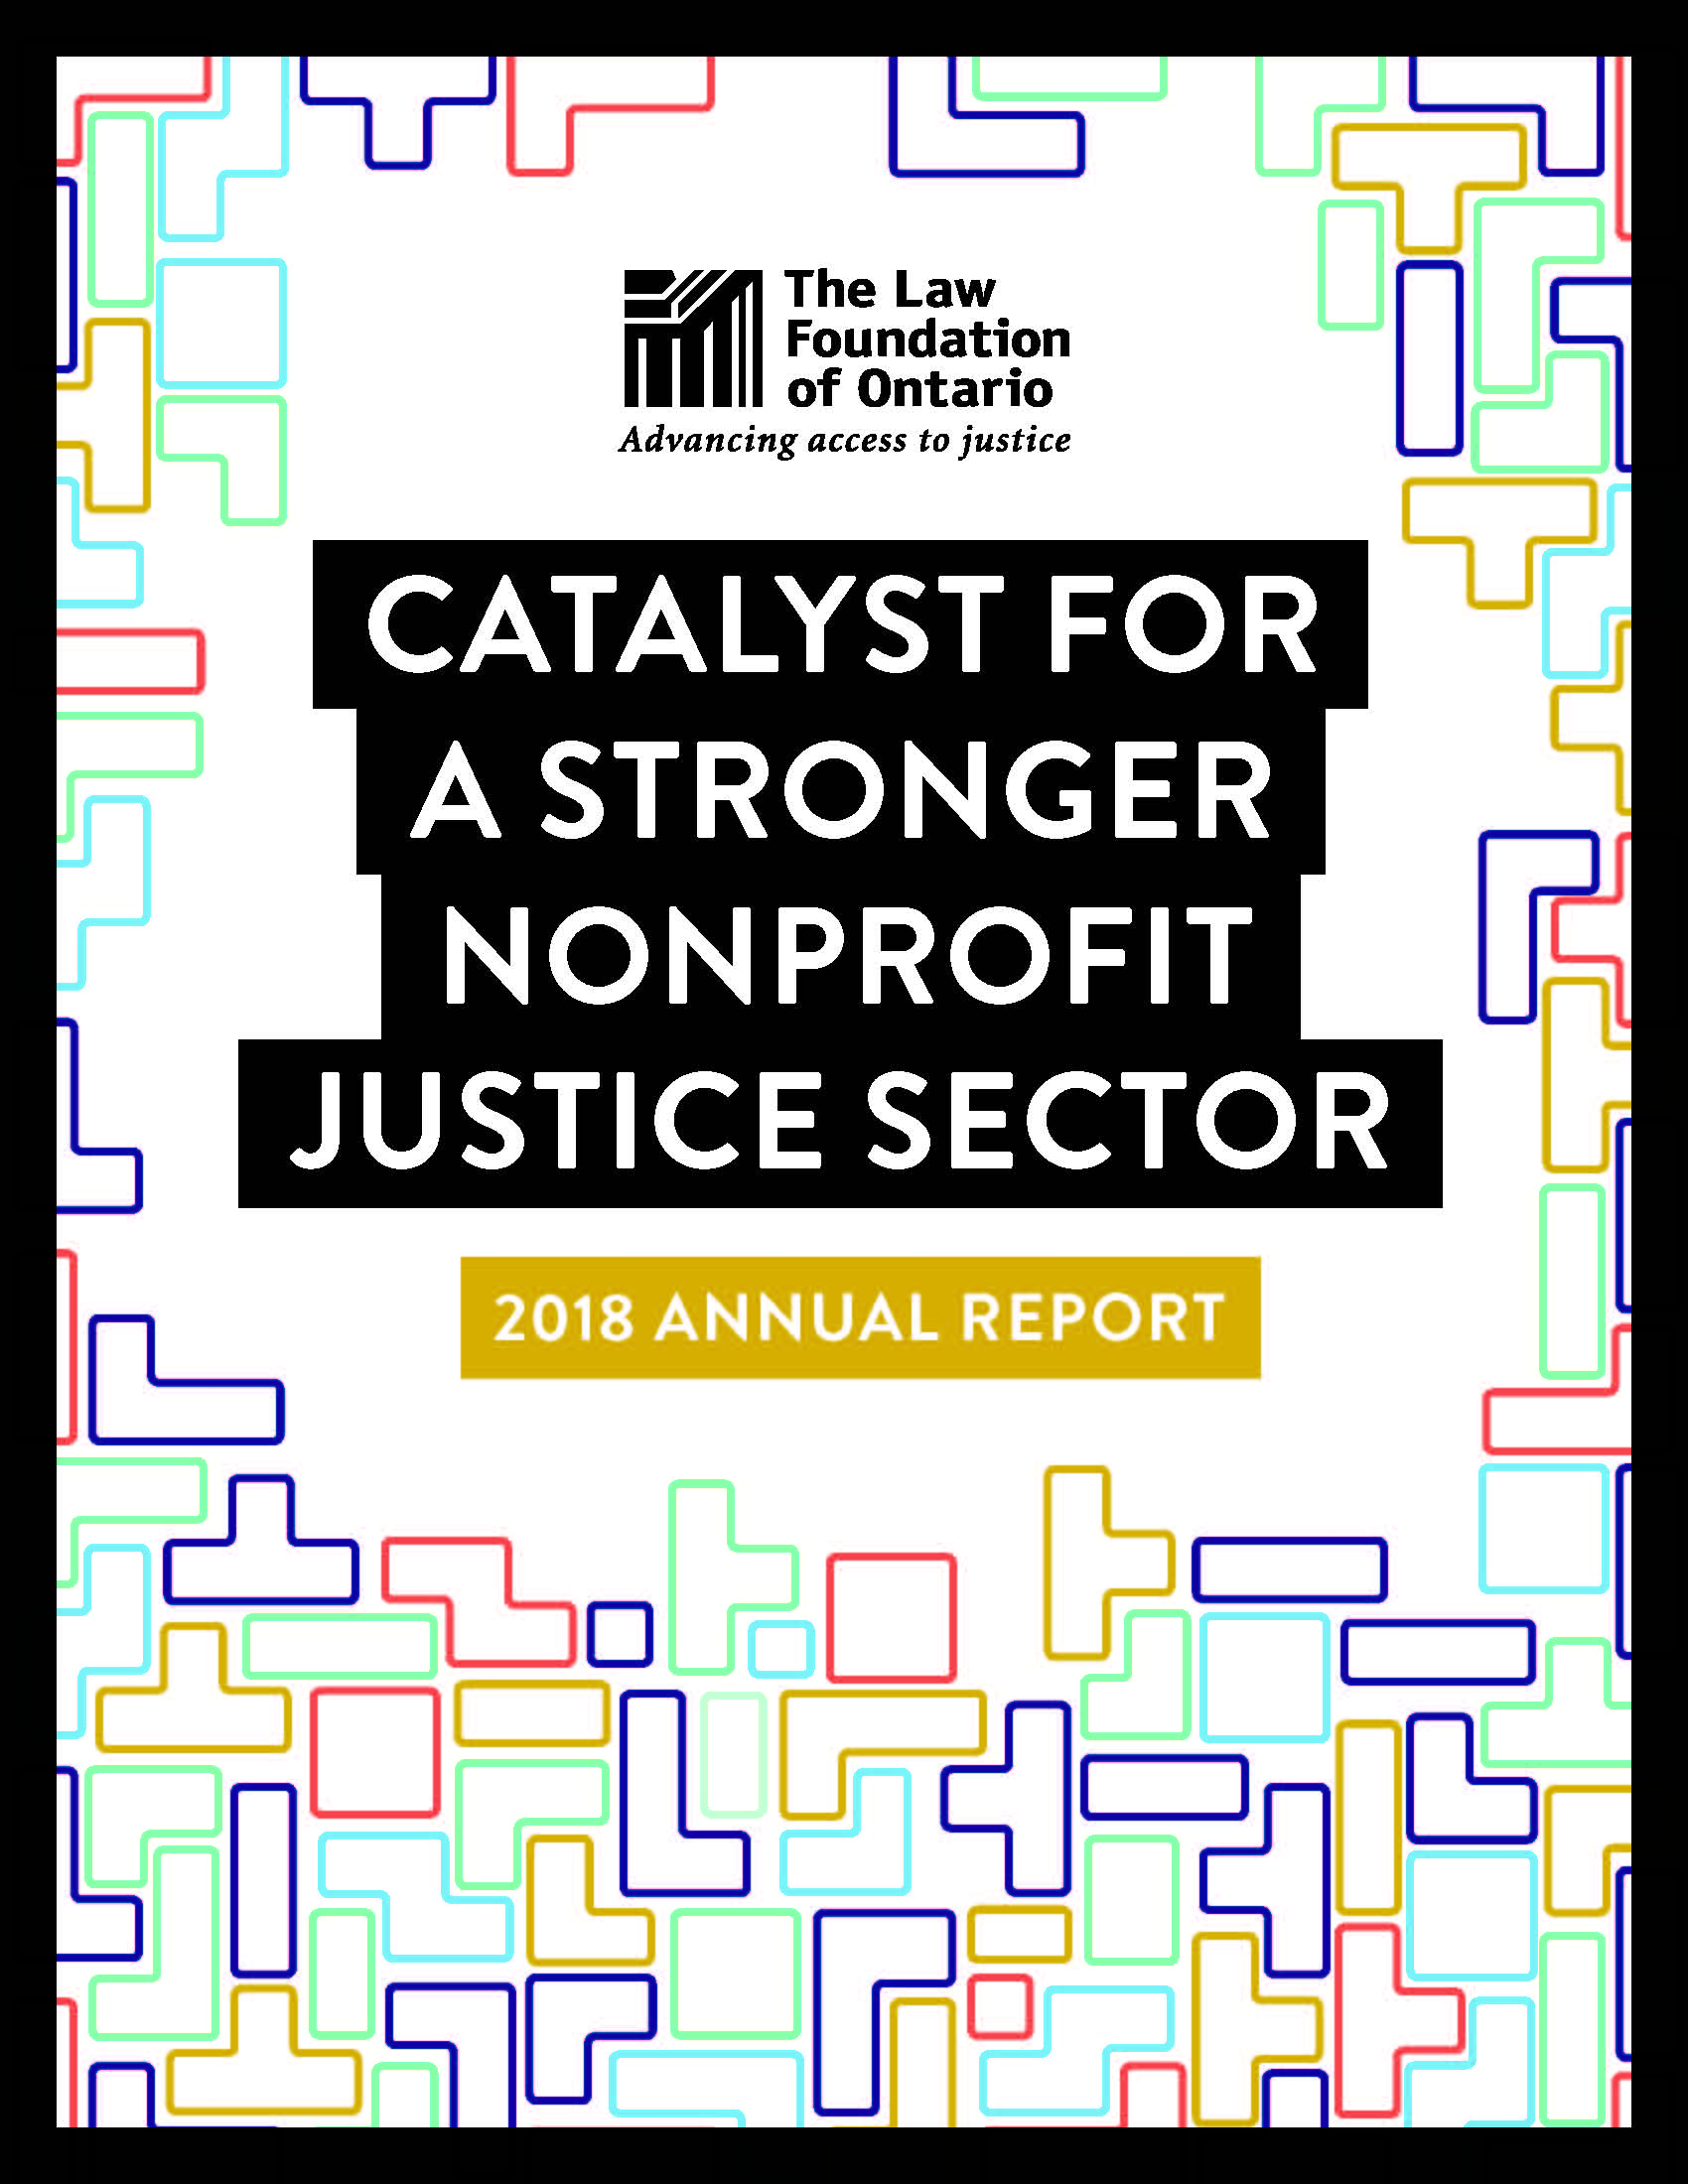 2018 Annual Report Catalyst for a Stronger Nonprofit Justice Sector